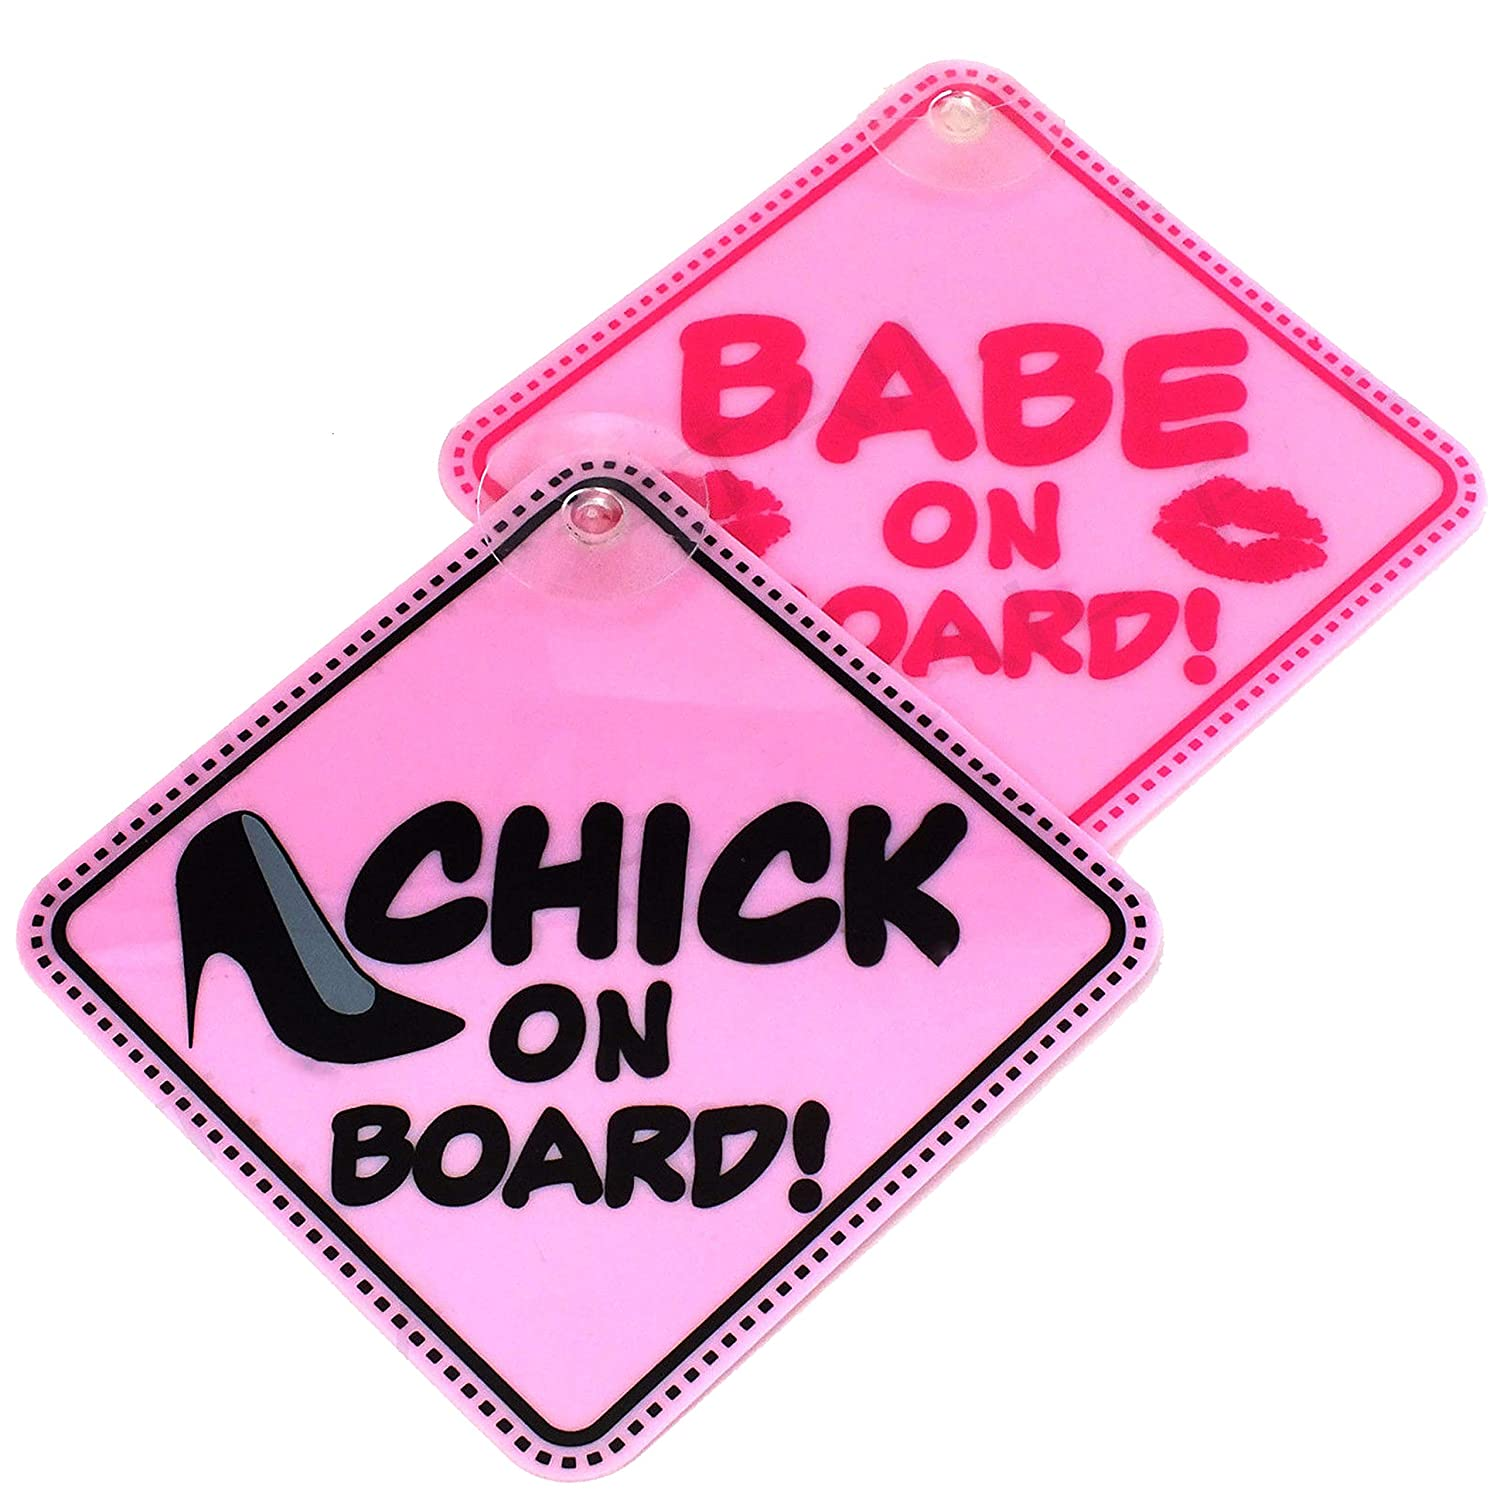 Babe /& Chick On Board Novelty Window Sign White Hinge 2 Pack Girls Pink Suction Car Signs